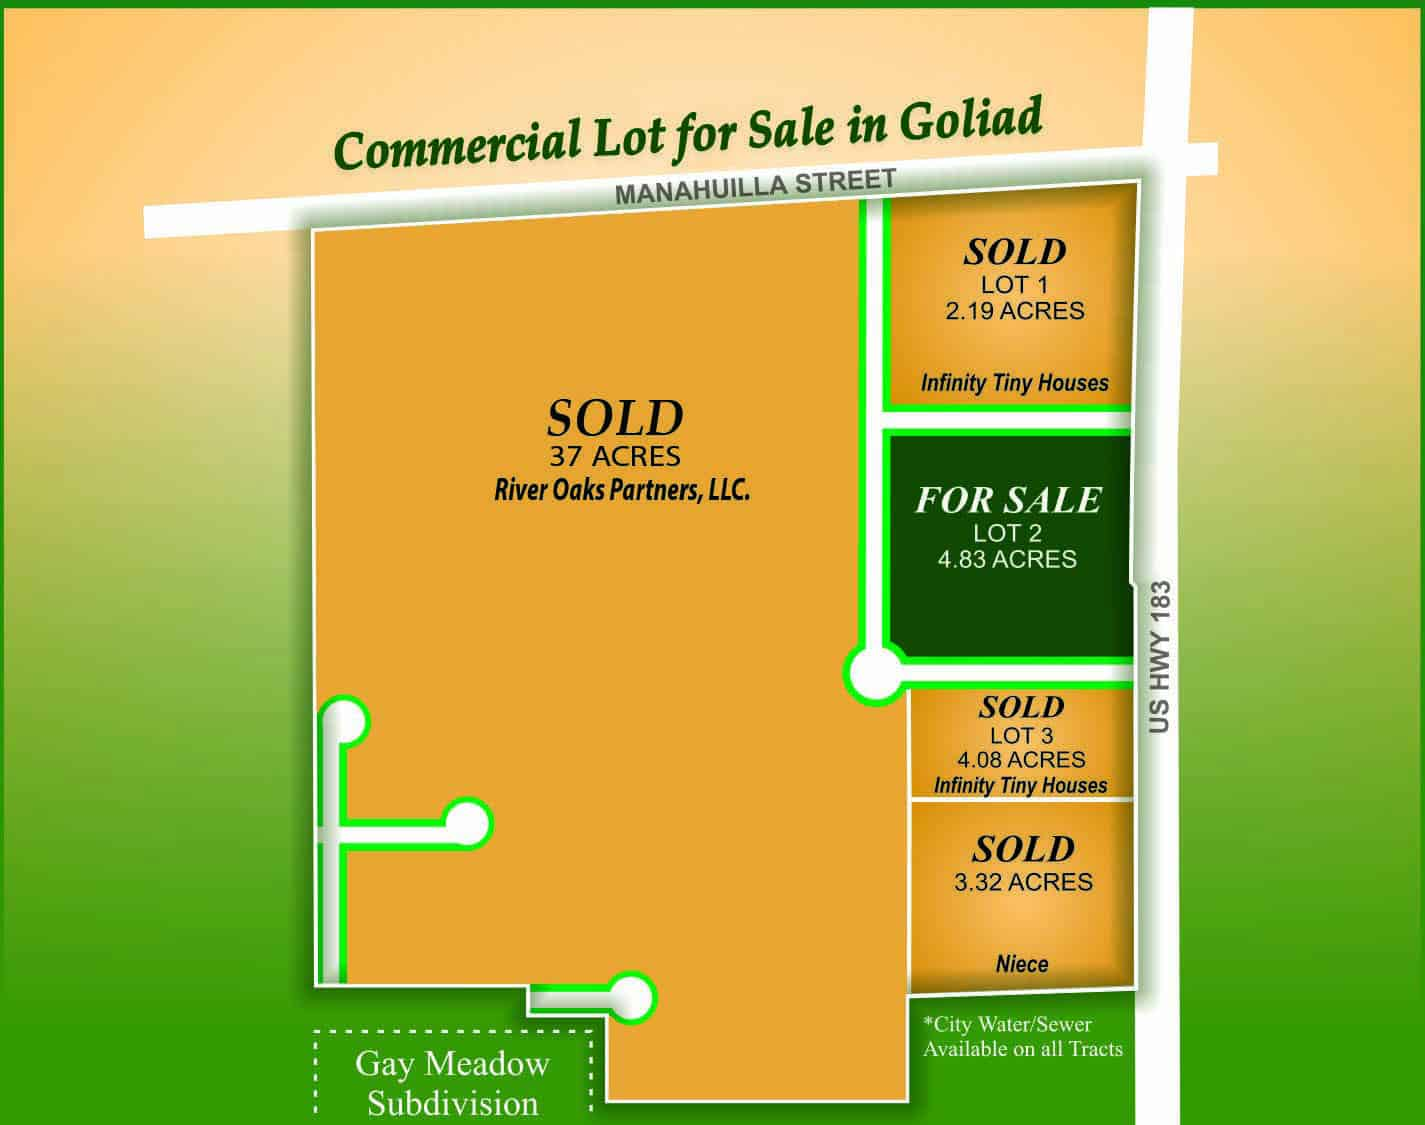 Commercial Lot for Sale in Goliad Tx